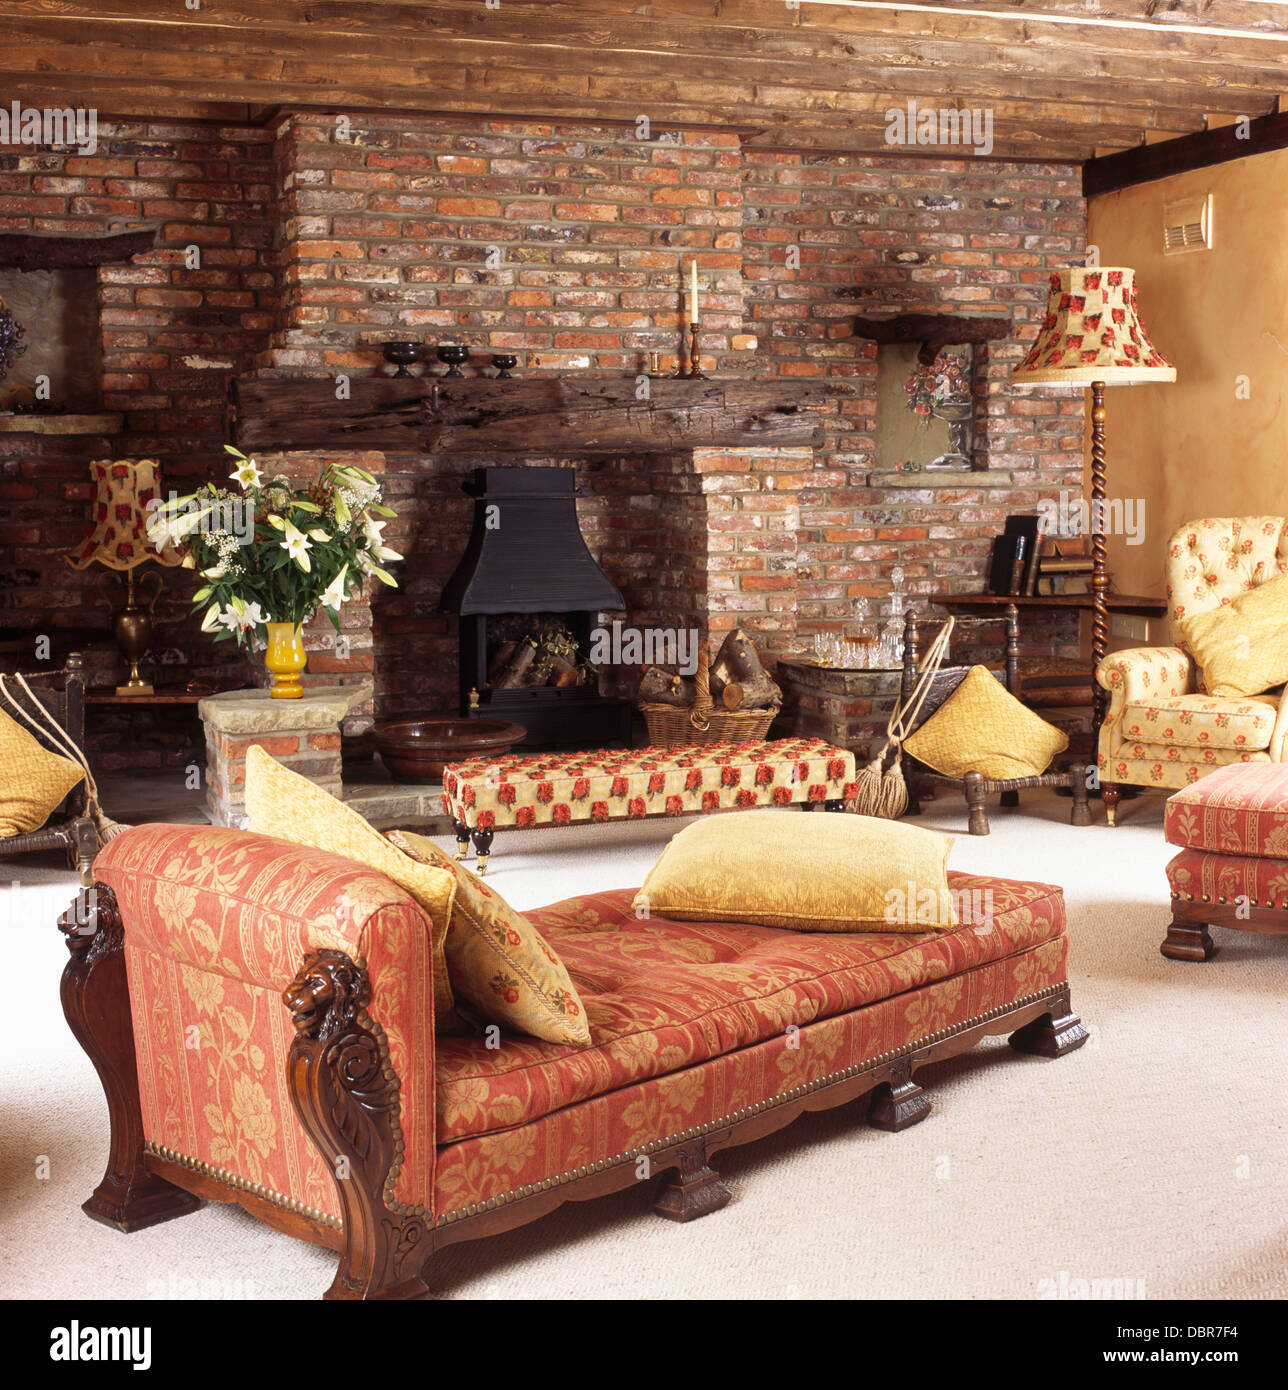 comfortable terracotta zoffany upholstered chaise-longue in